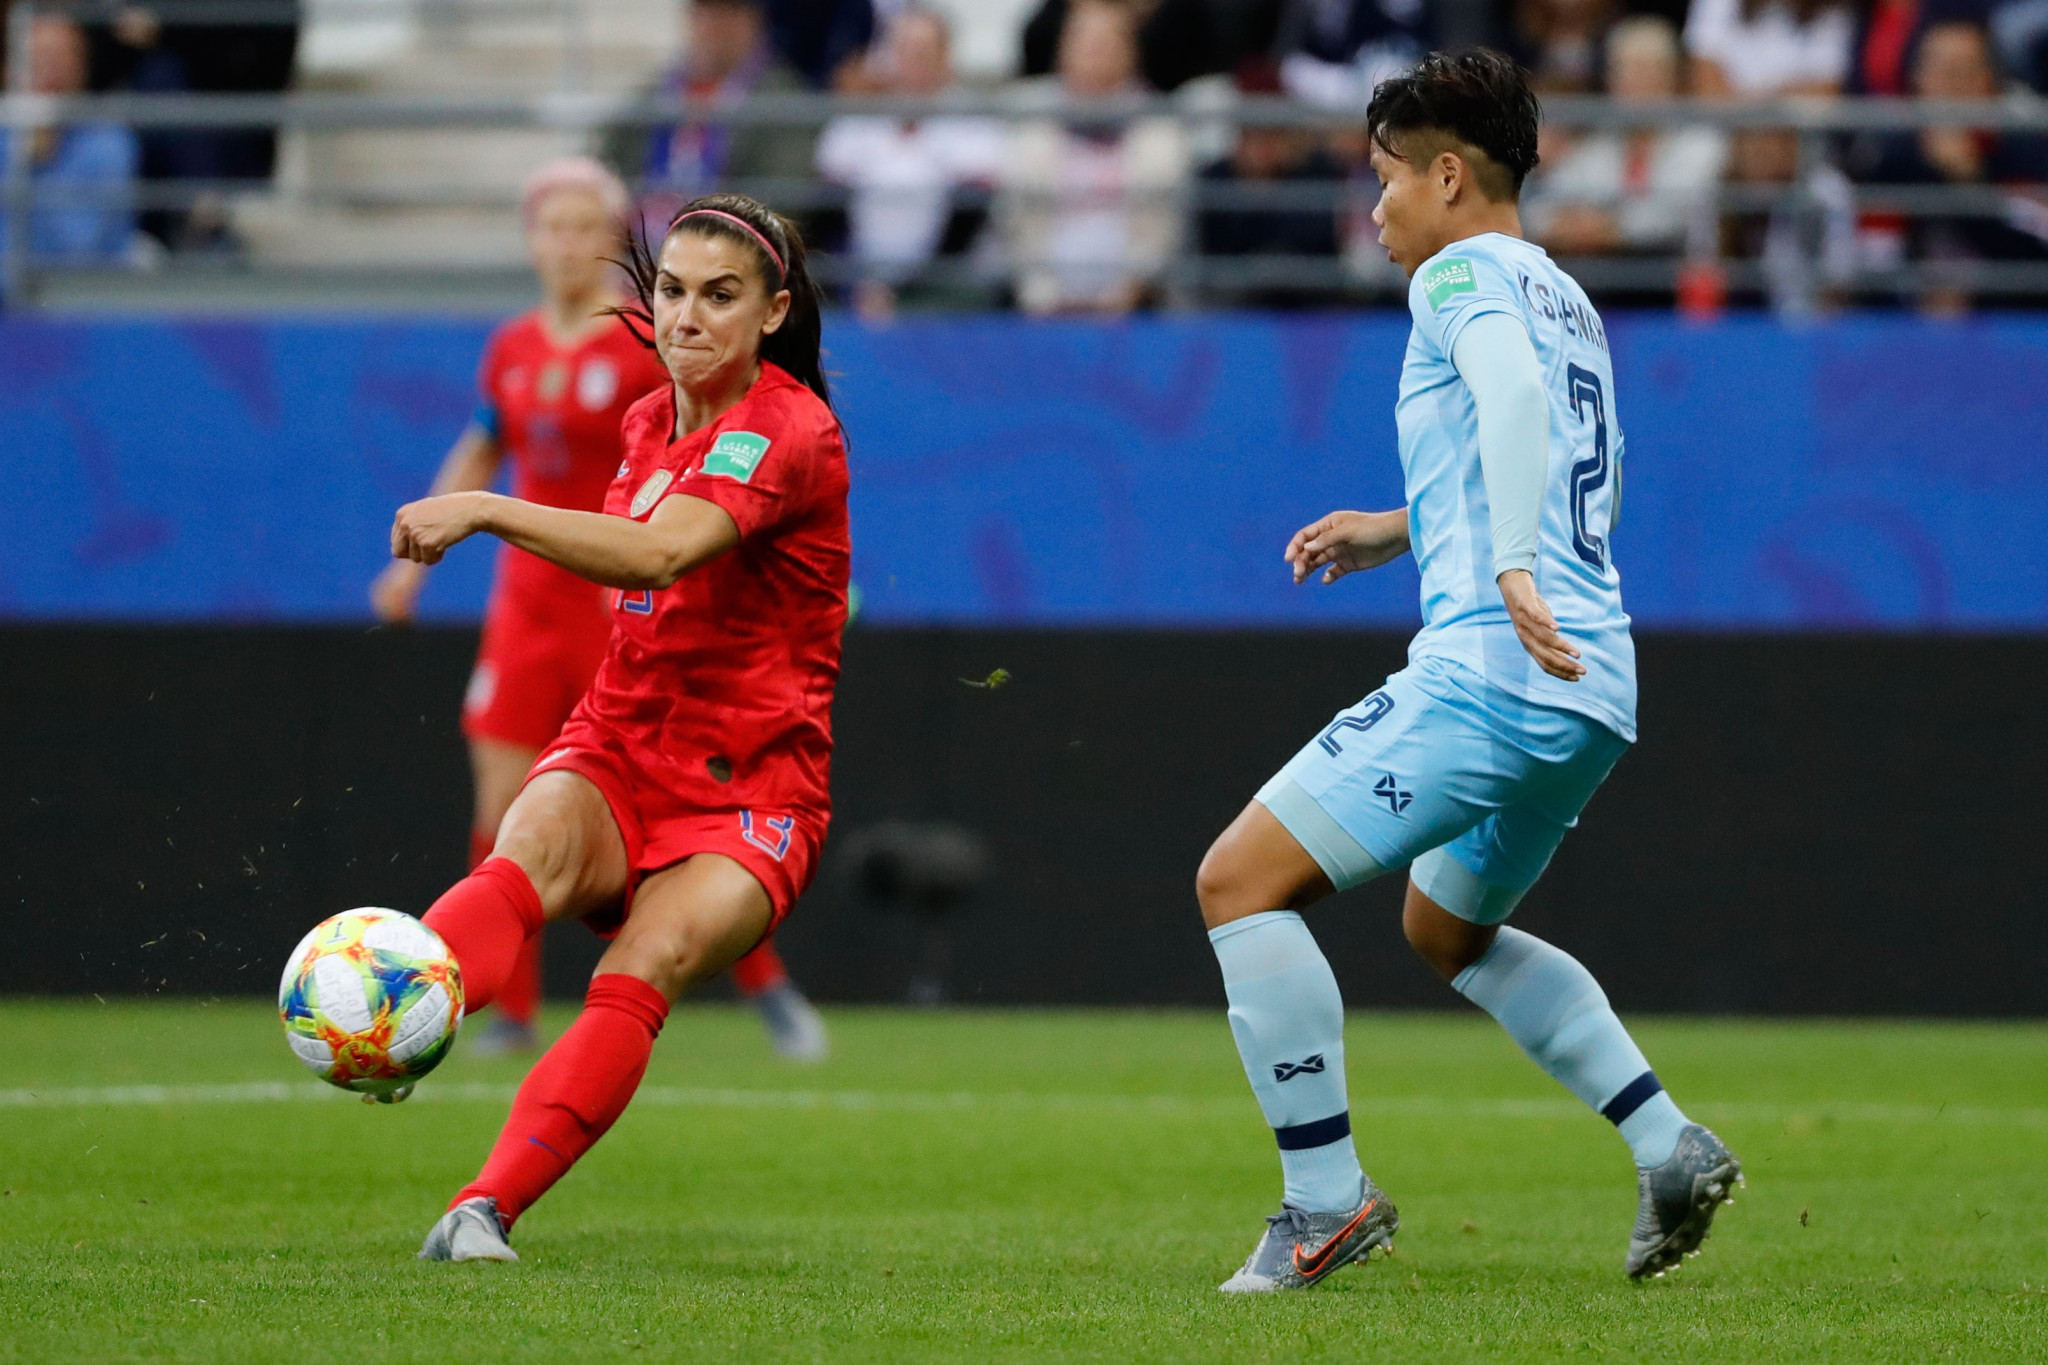 Alex Morgan scored five goals for the United States in their 13-0 demolition of Thailand ©Getty Images